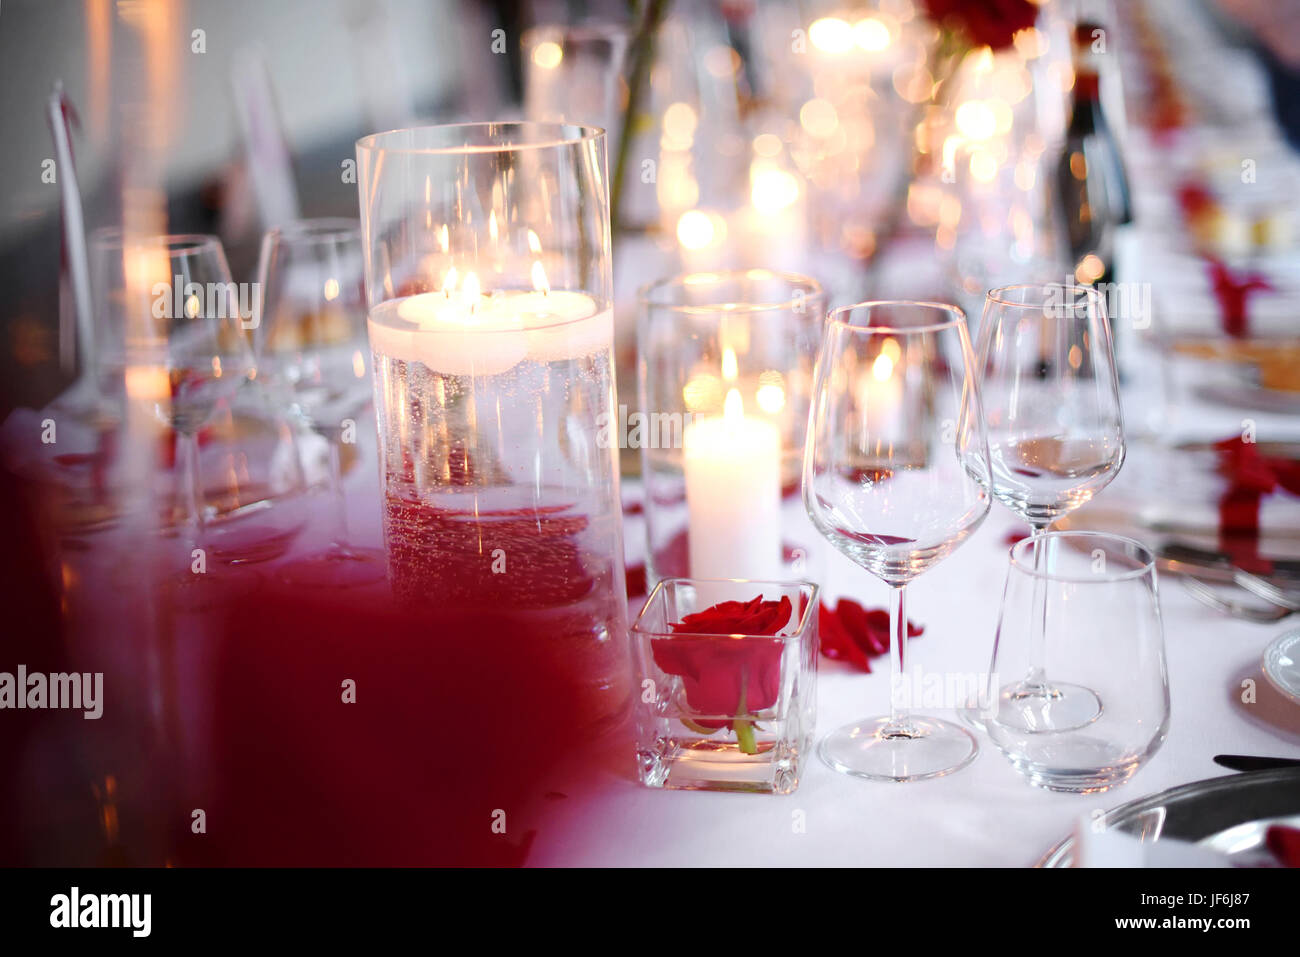 Romantic candlelit dinner table setting with elegant glassware and red flowers over a white tablecloth in a close - Stock Image